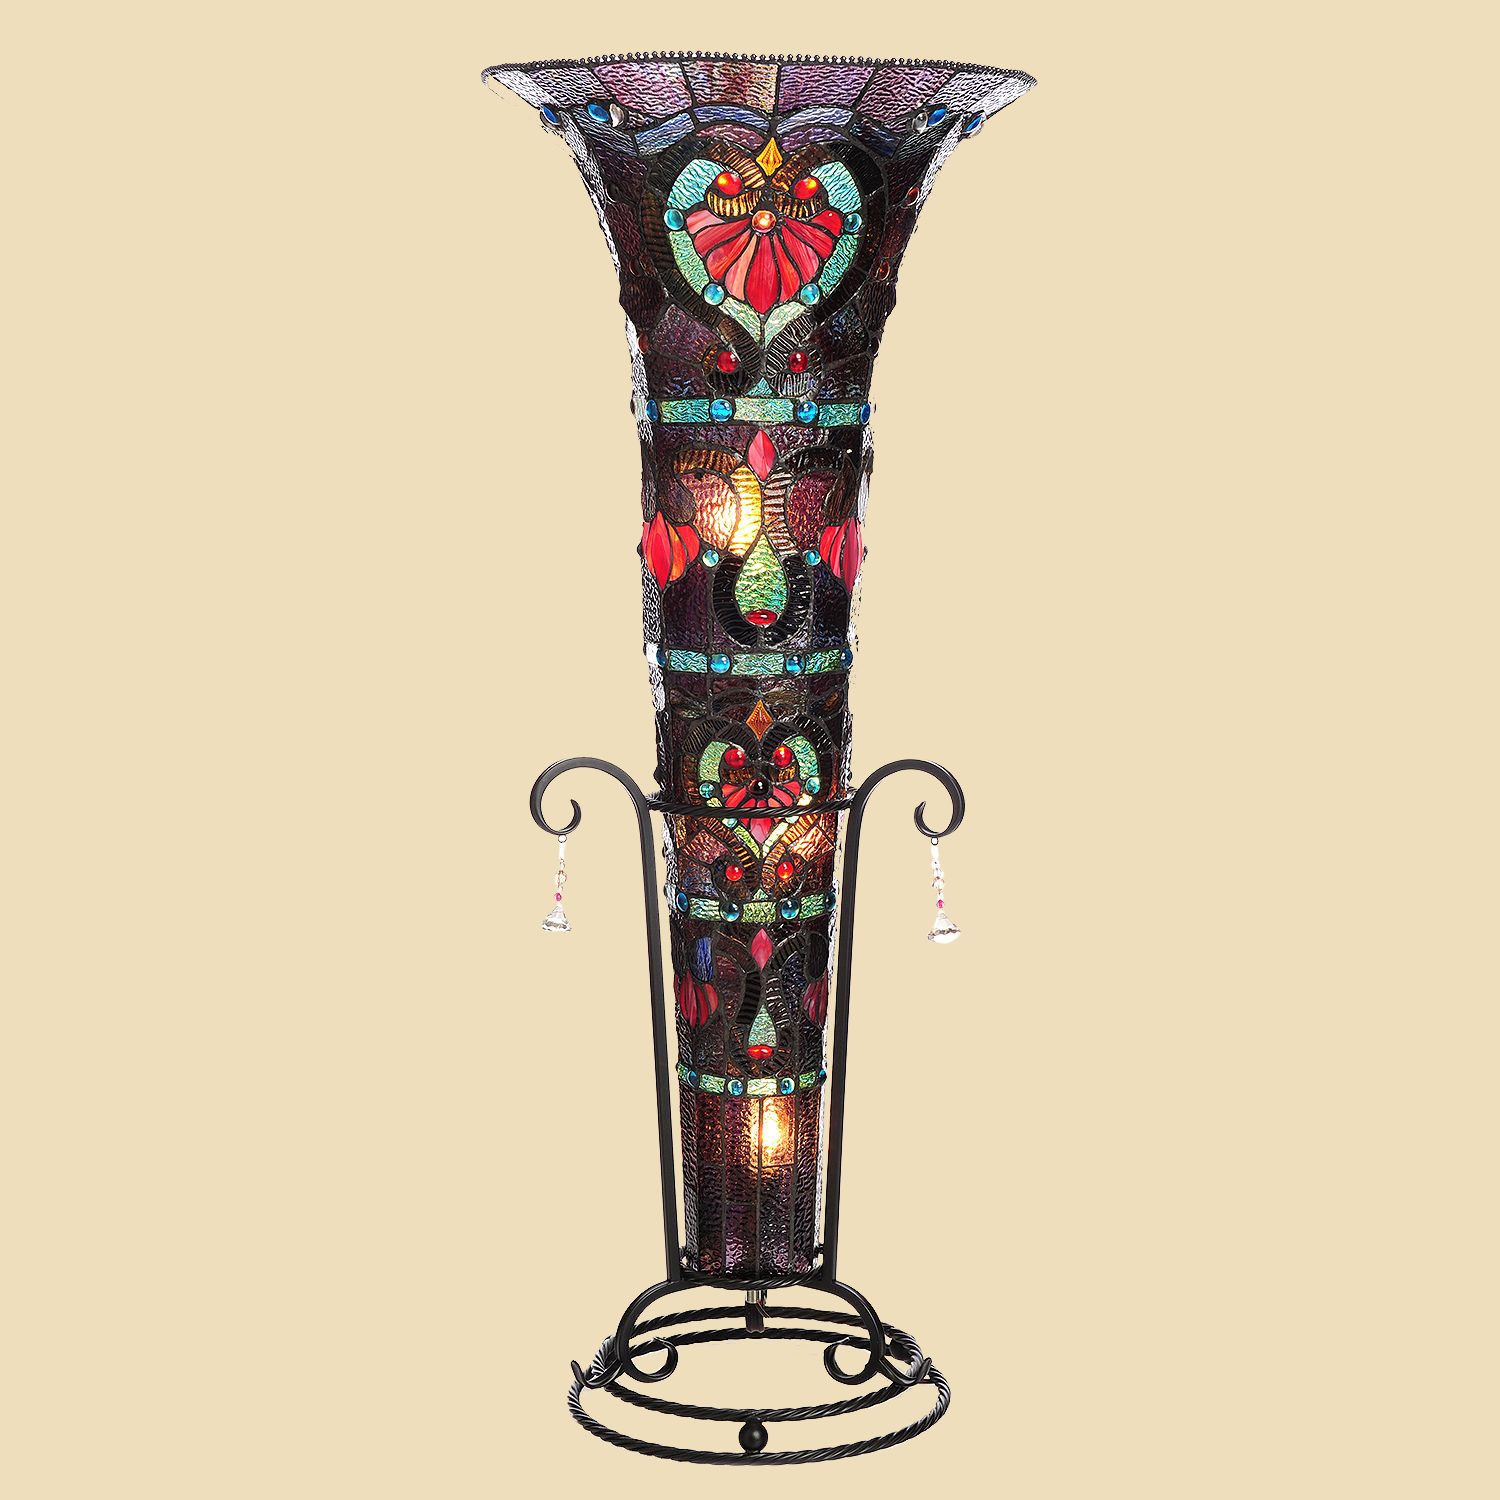 tiffany style 435quot stained glass ruby ribbons vase floor With tiffany style vase floor lamp